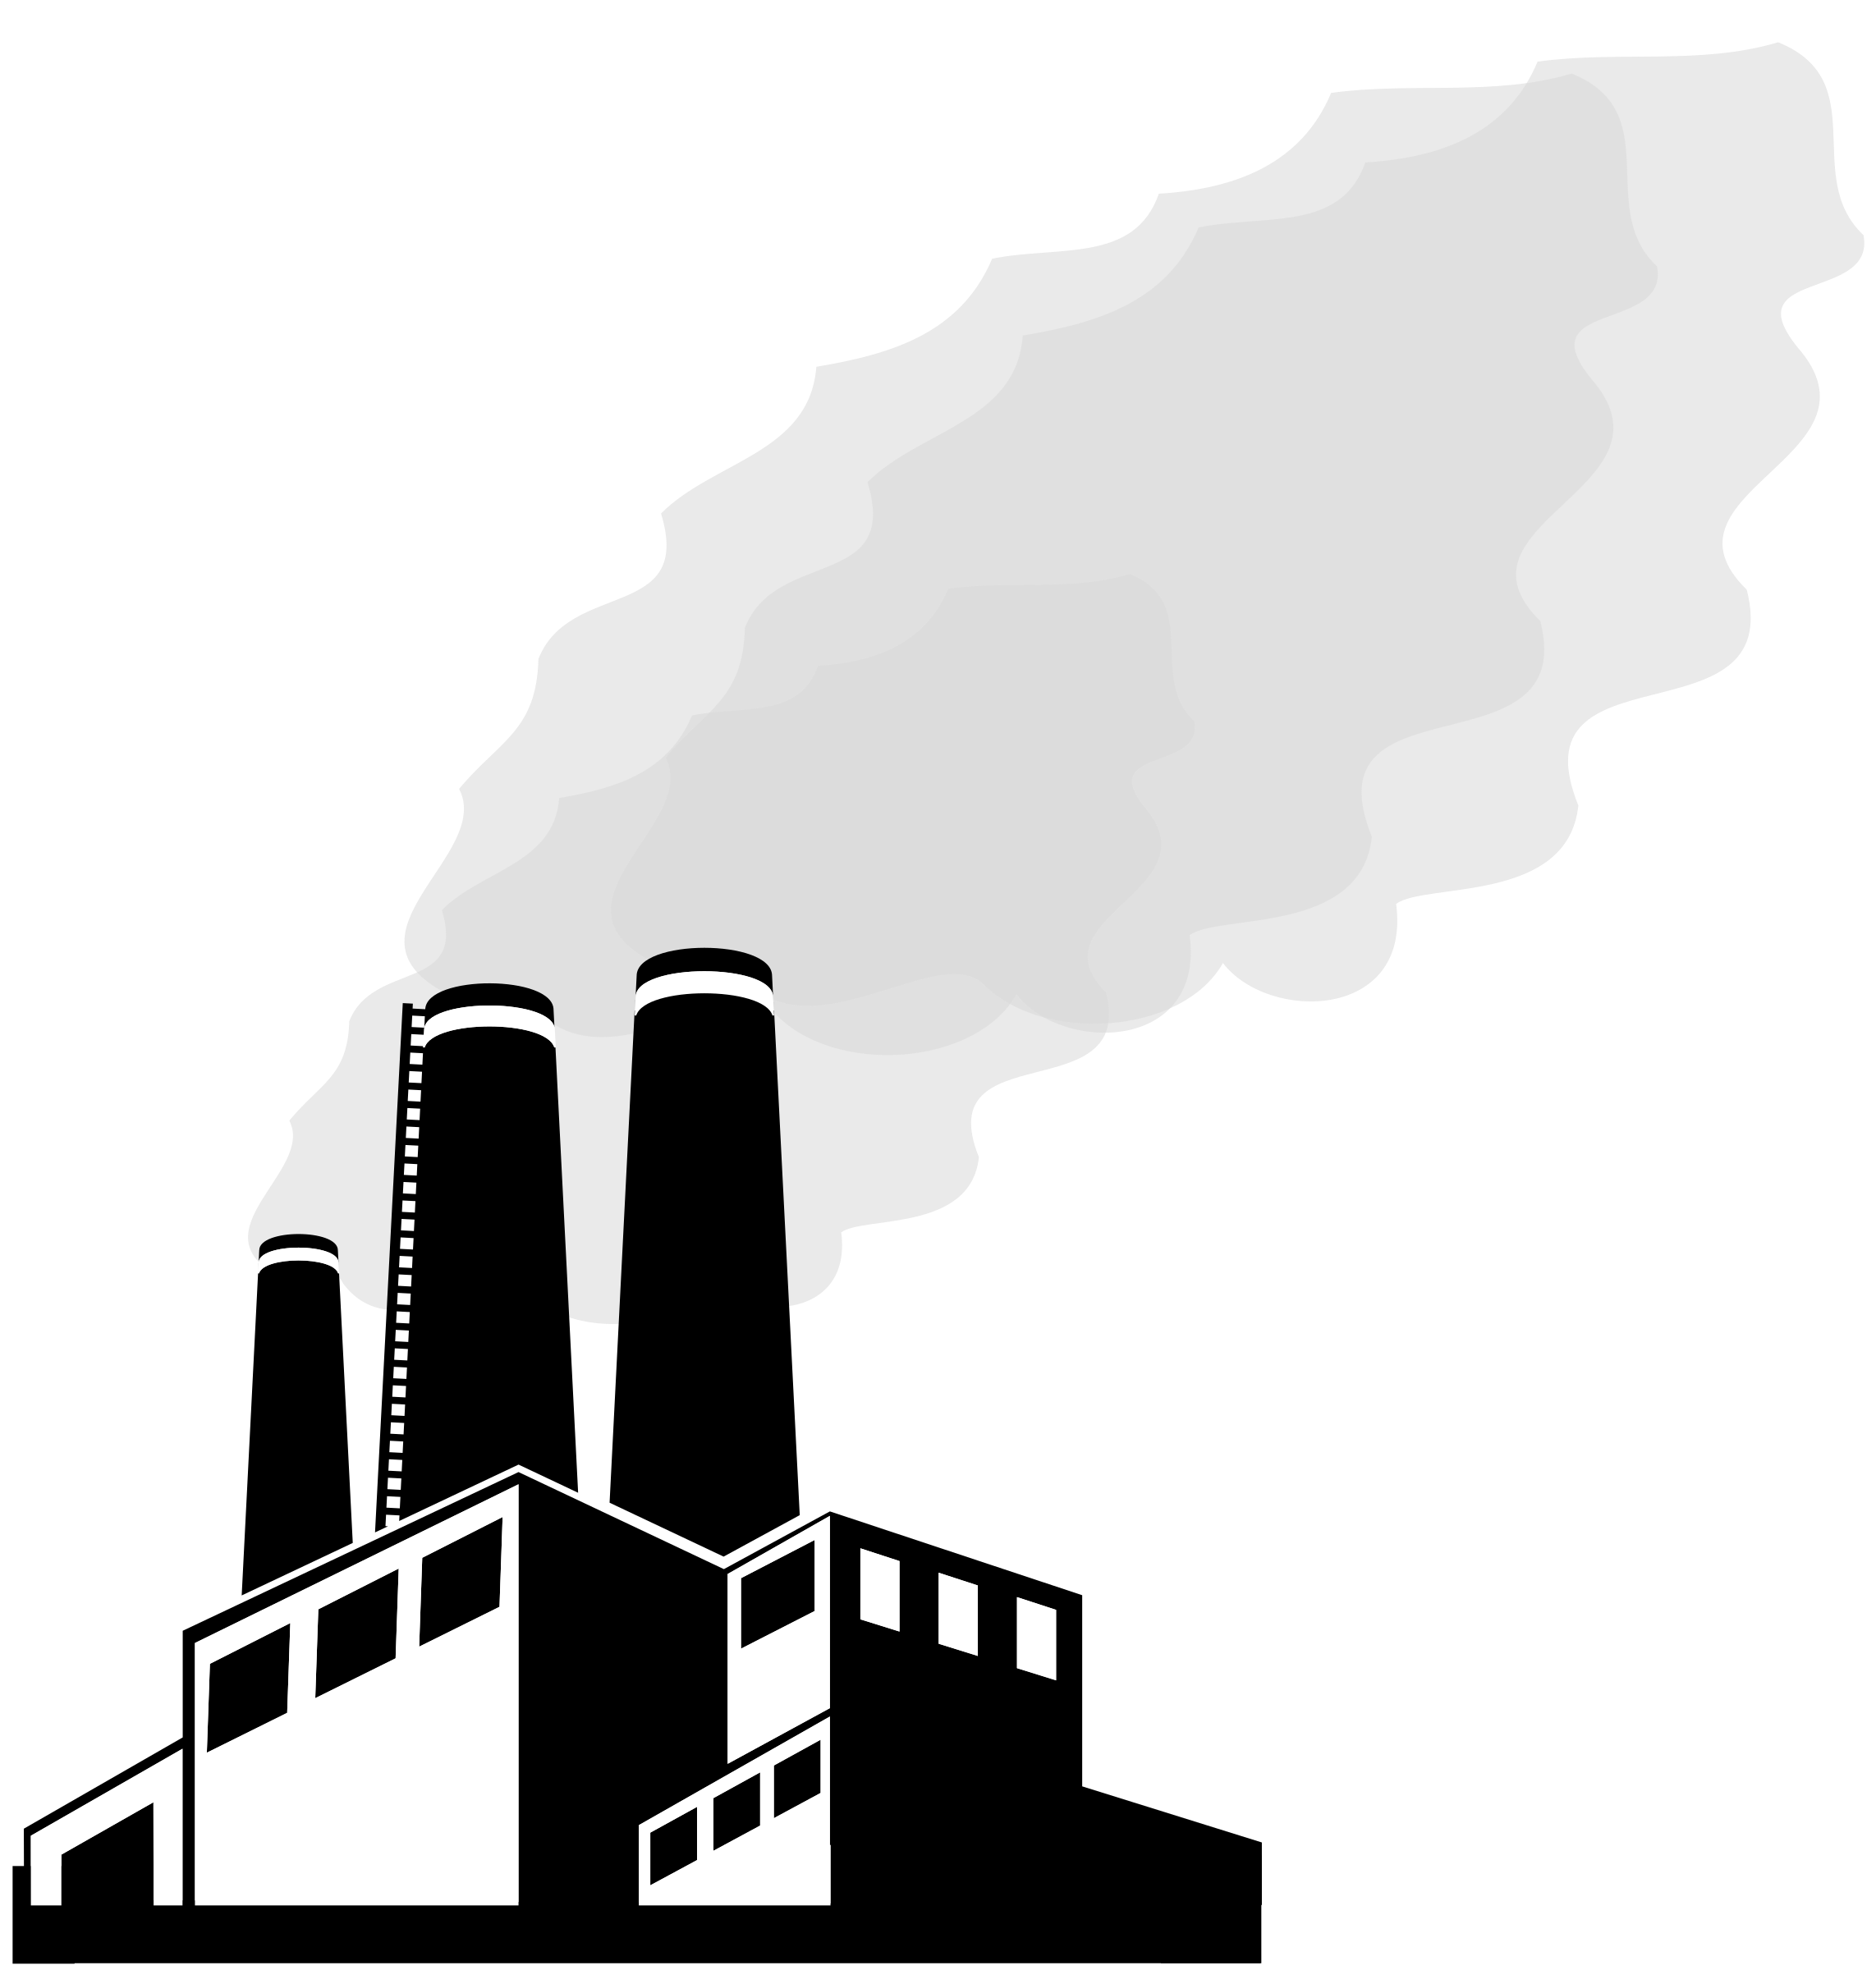 Factory clipart outline. Smog big image png